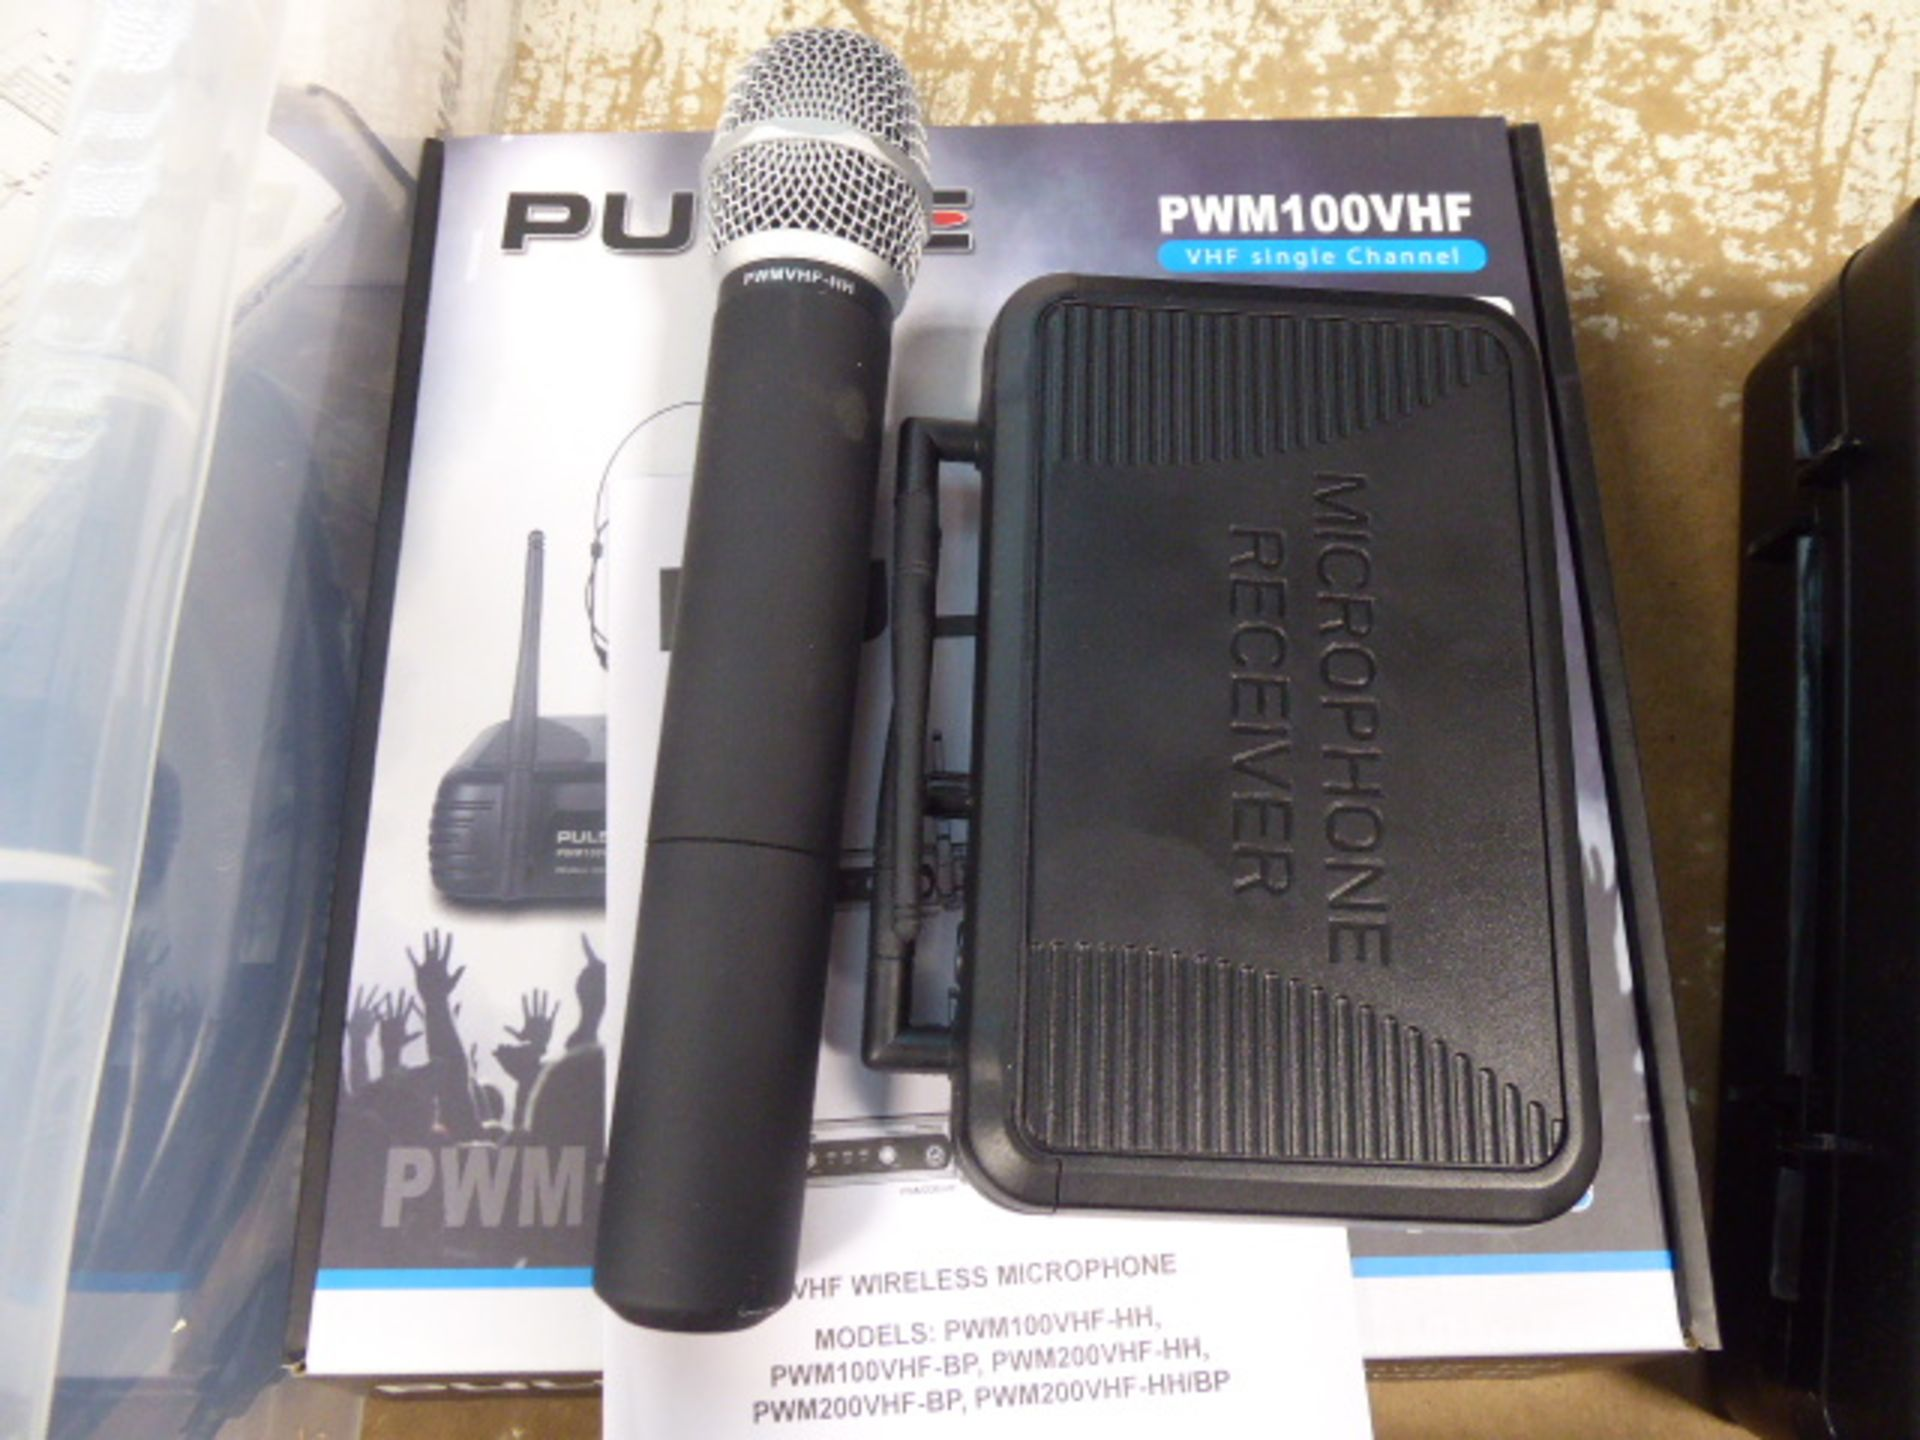 Pulse PWM100 VHF single channel receiver and microphone with box - Image 3 of 3